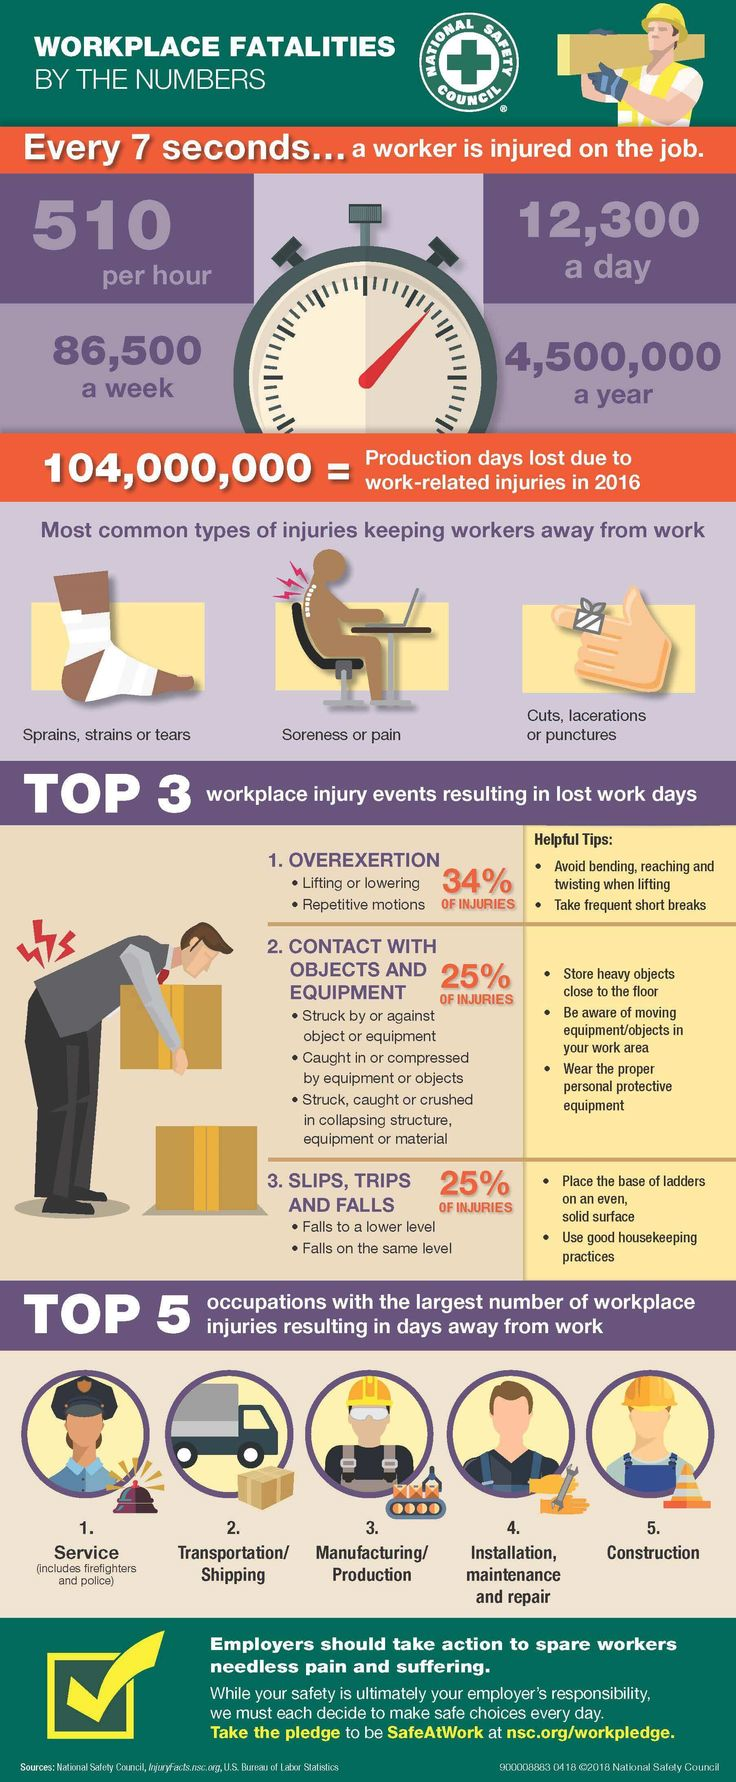 Every 7 seconds a worker is injured on the job these